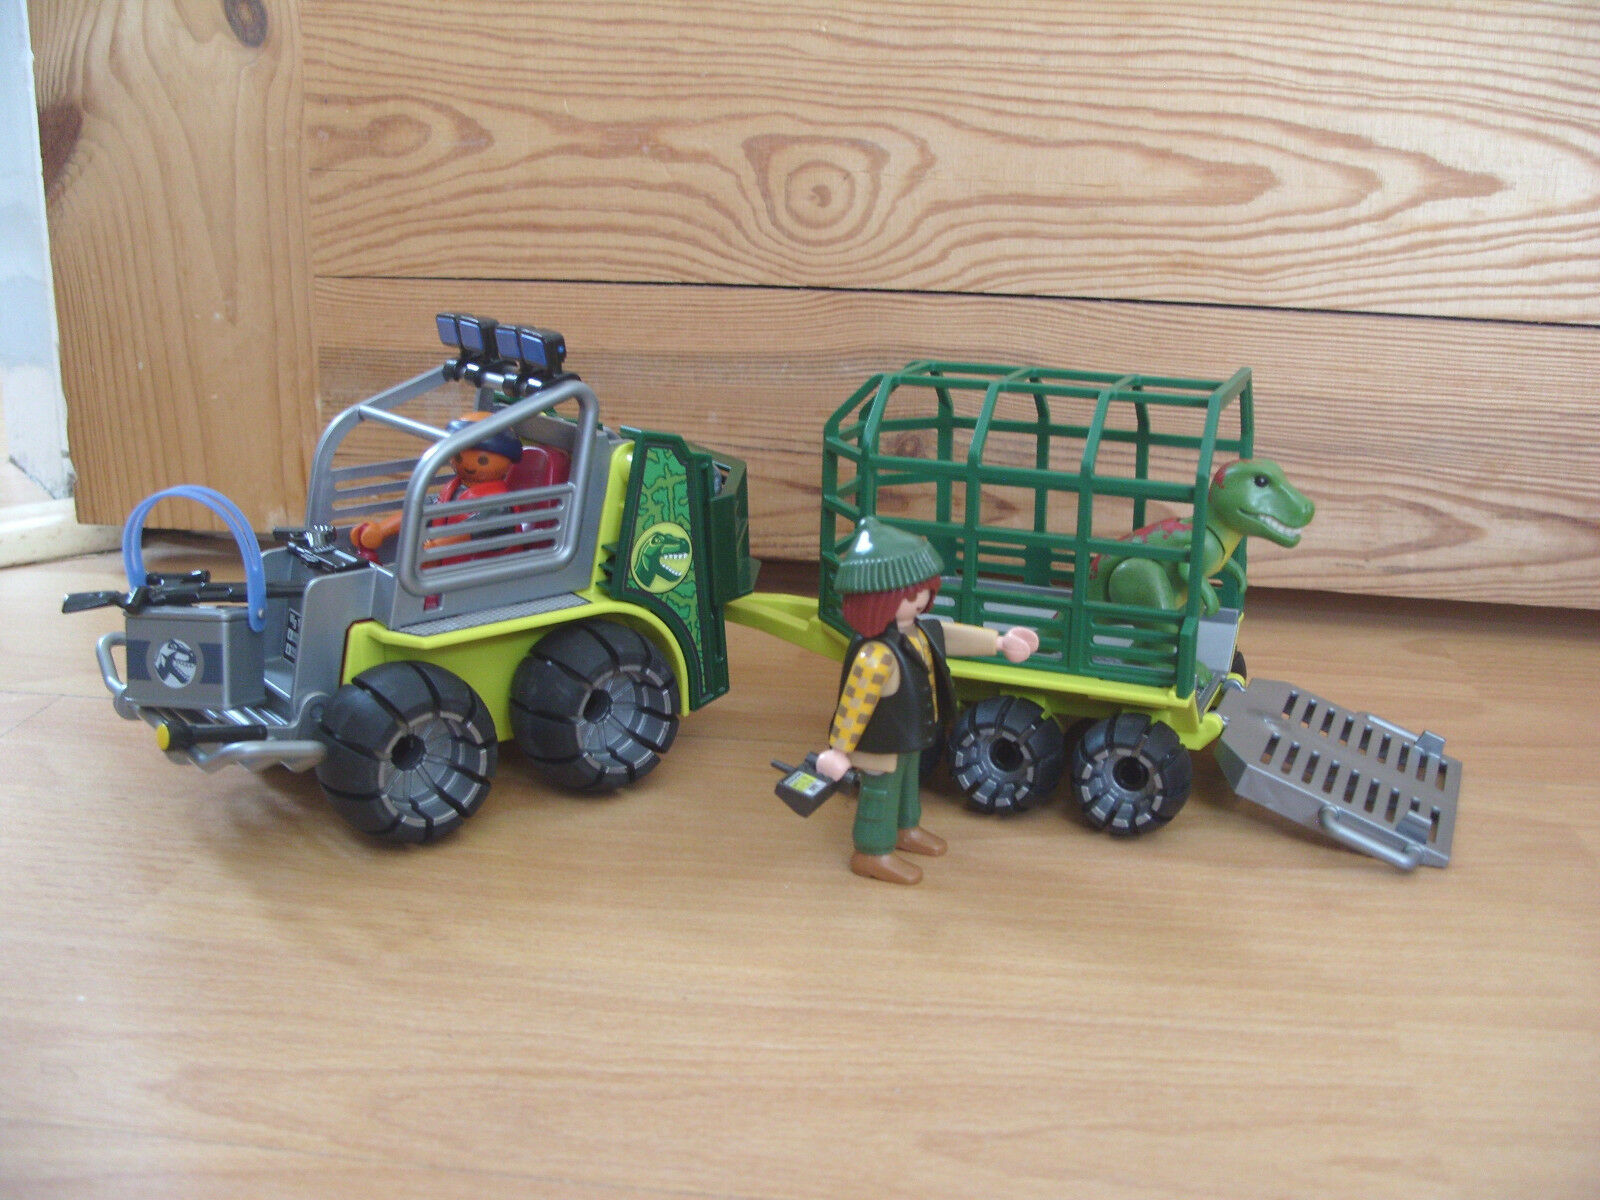 Playmobil 100% 100% 100% Complete Set 5236 Dinosaur Transport Vehicle with Baby T-Rex e68b6d